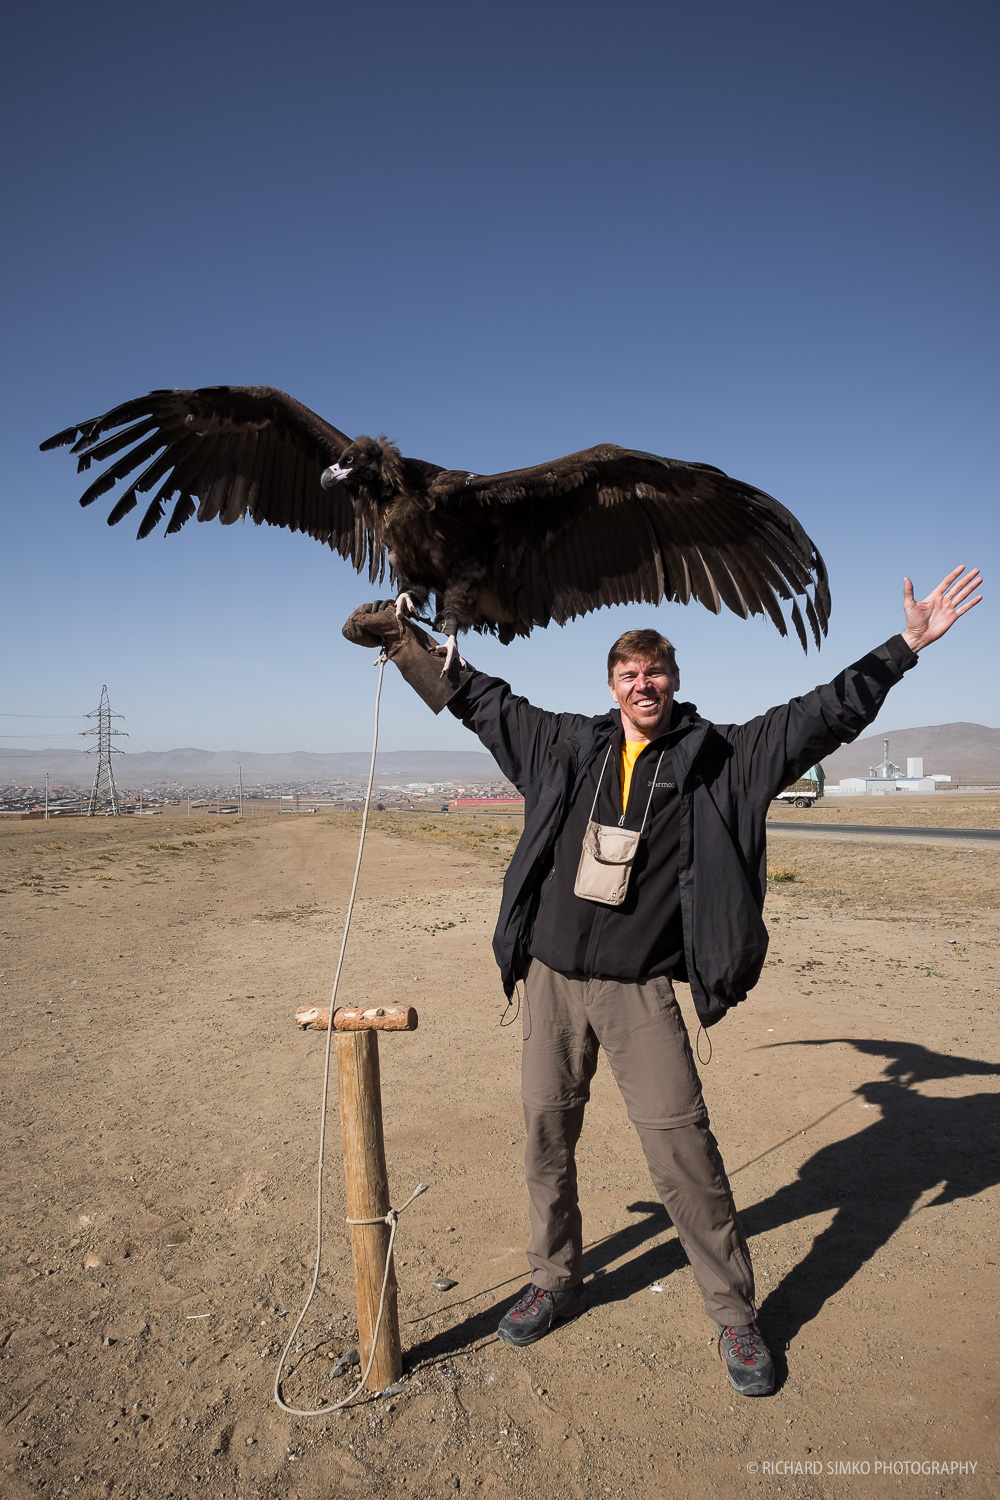 Having fun with vulture. It is huge and it is heavy.